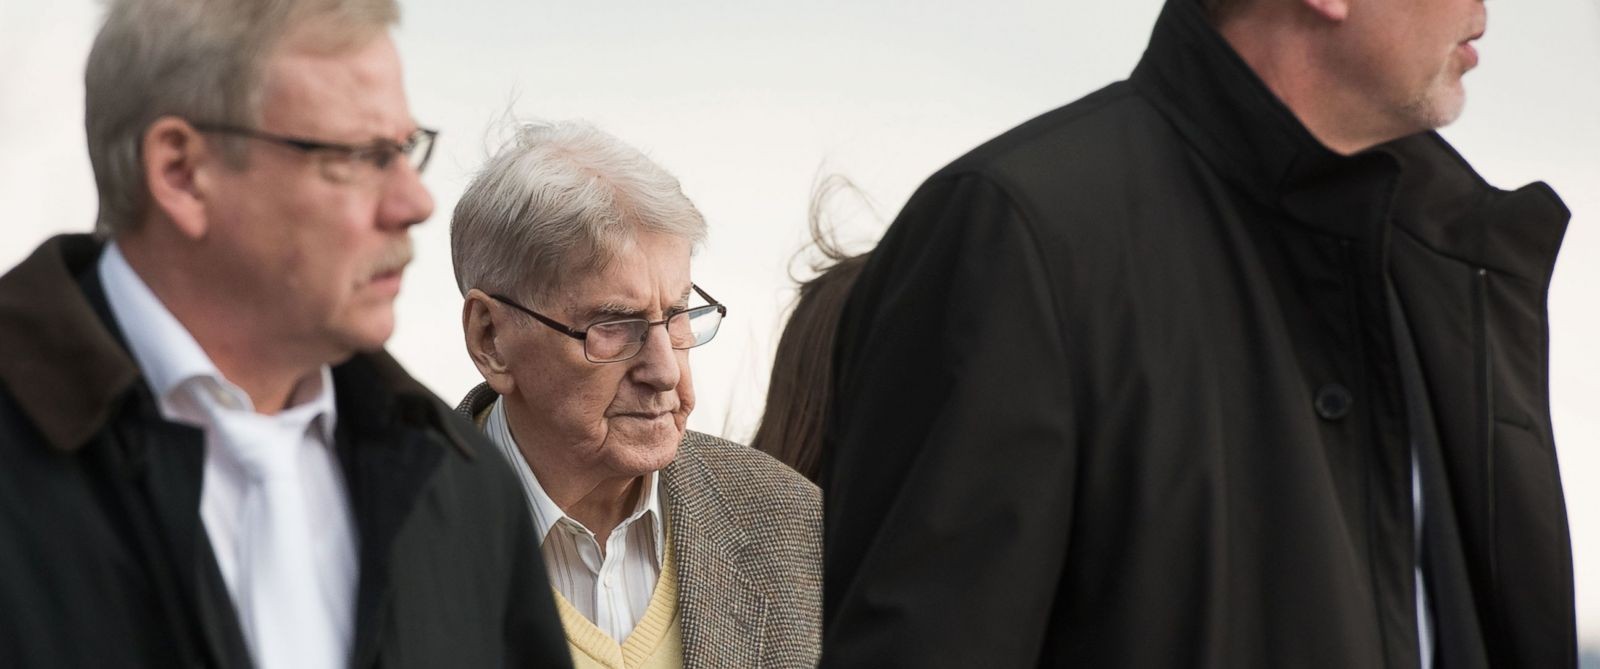 PHOTO: 94-year-old former SS guard at the Auschwitz death camp Reinhold Hanning, center, leaves the building with his lawyers after the opening of his trial in Detmold, Germany, Feb. 11, 2016.